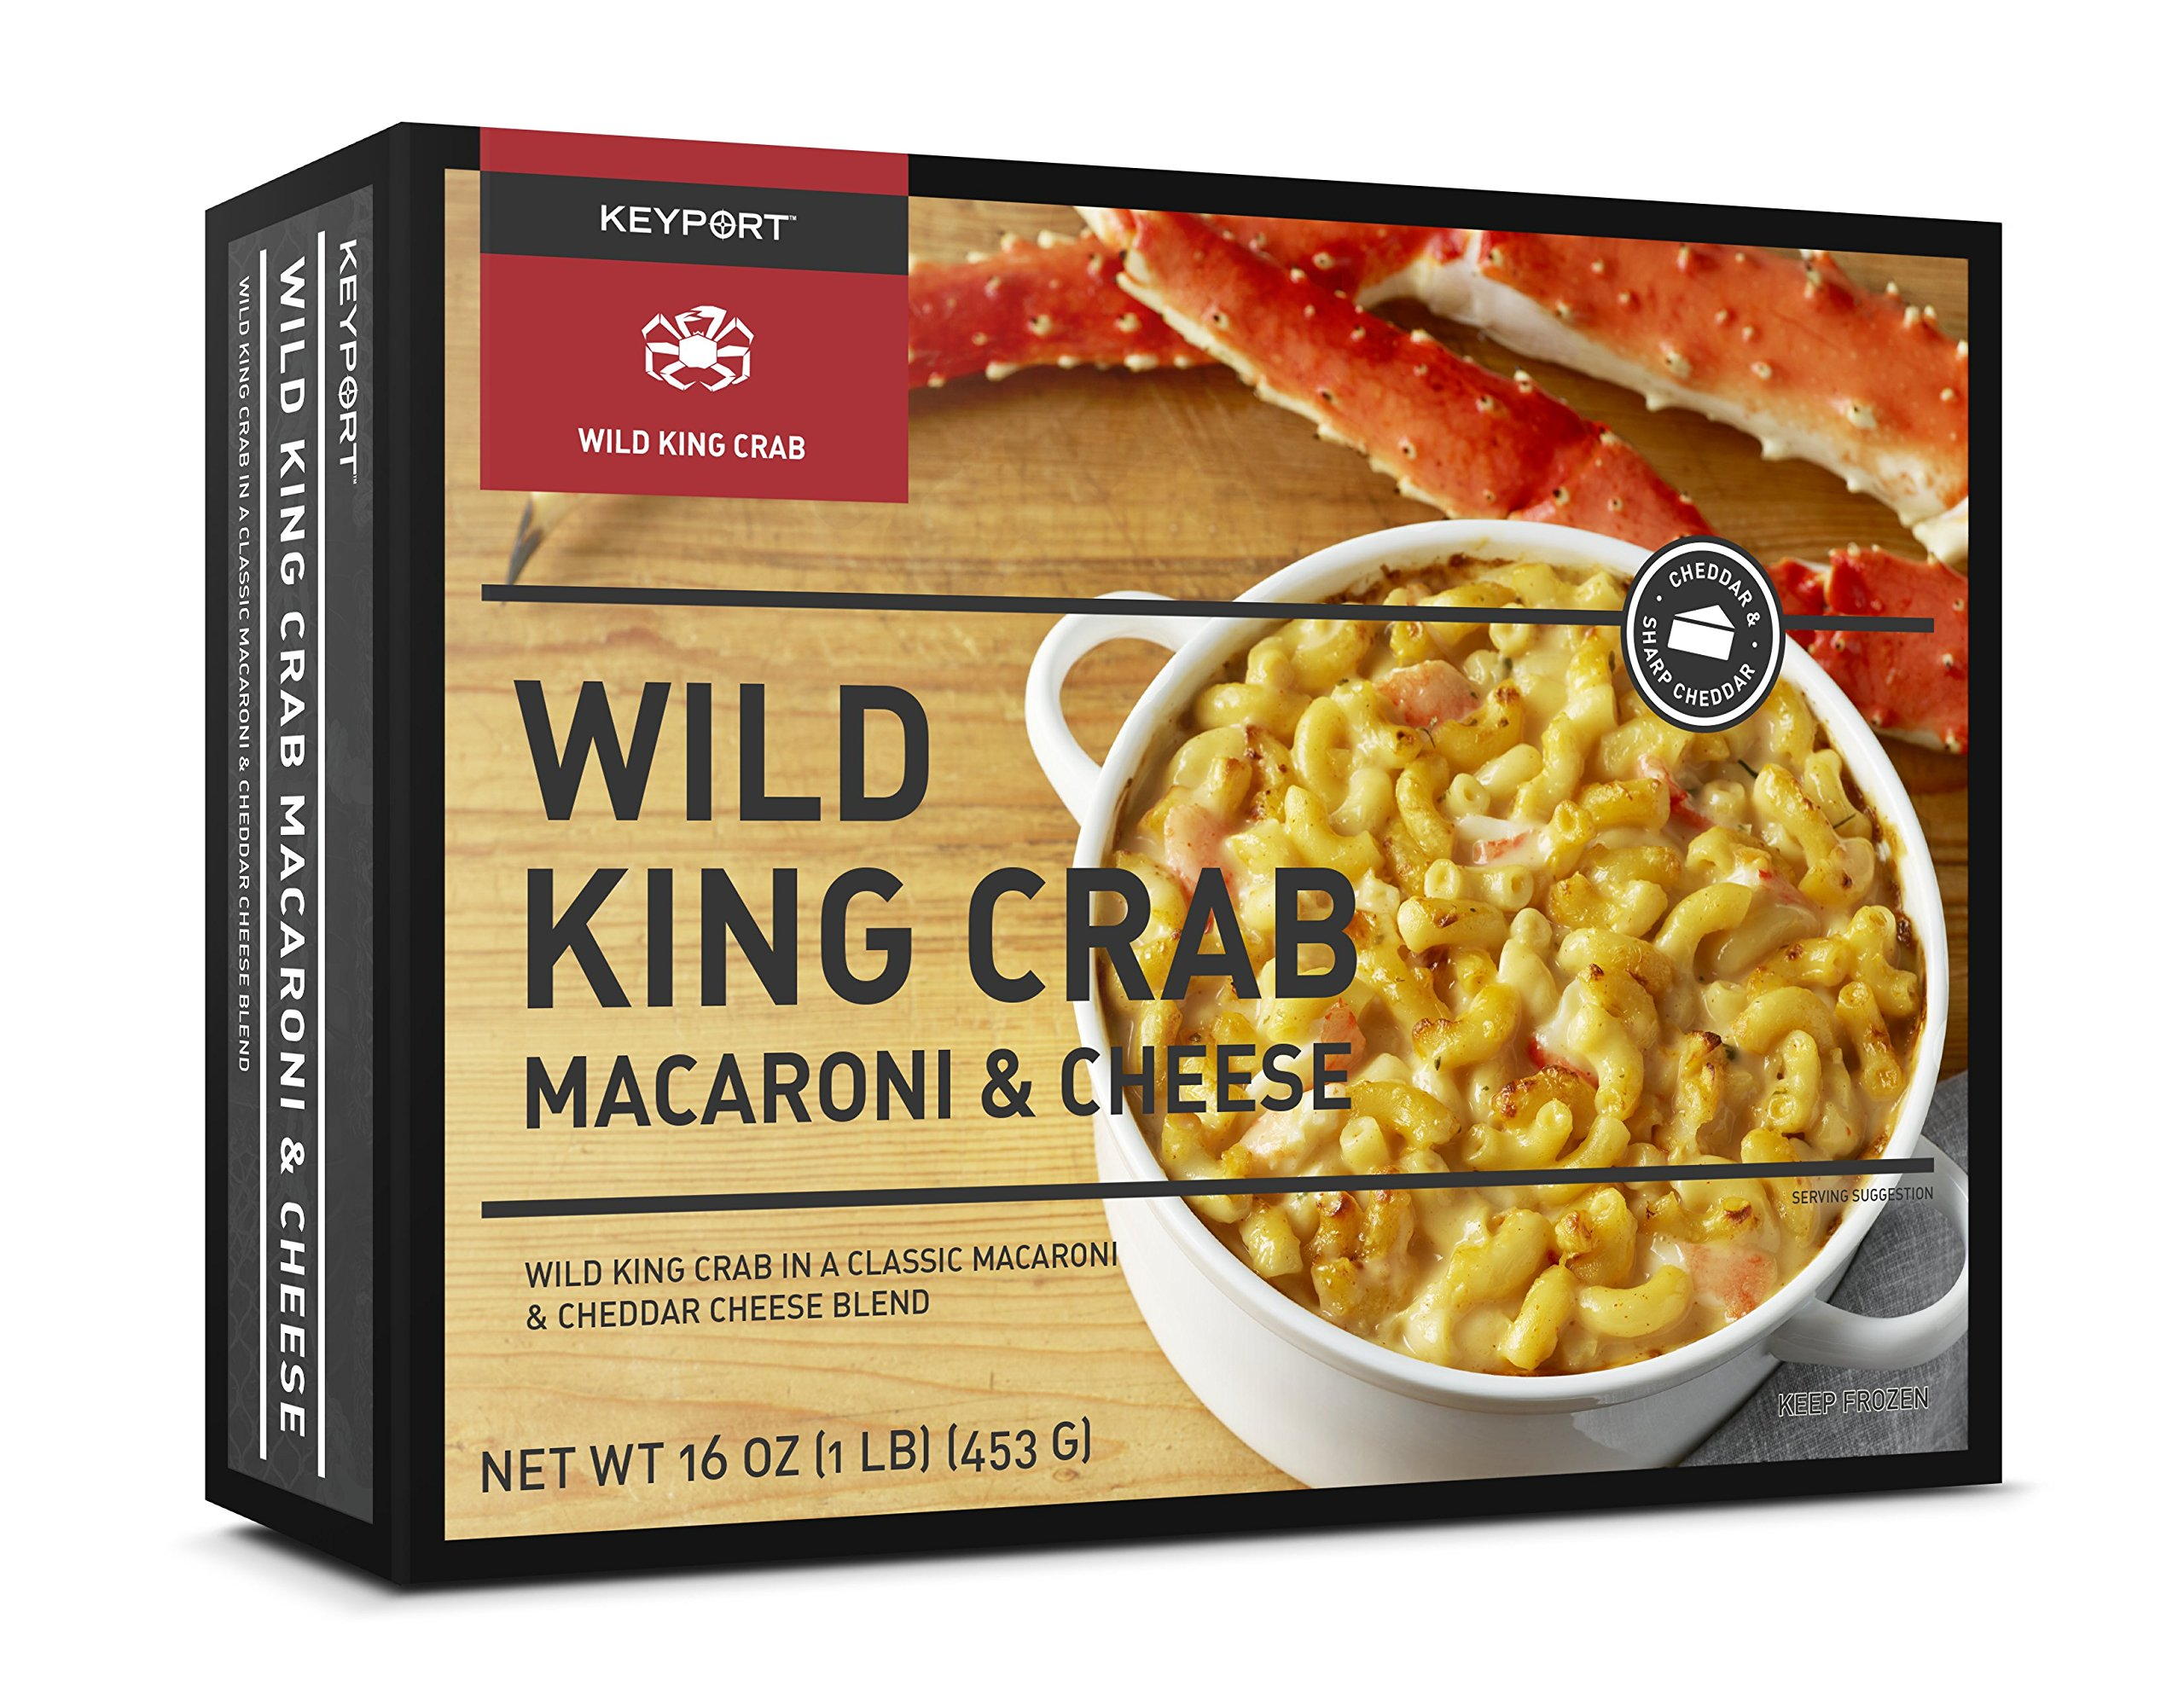 Keyport Seafood Macaroni & Cheese Variety Pack of 8 Meals - Two each of King Crab, Salmon, Lobster, and Shrimp & Scallop Mac and Cheeses by Keyport LLC